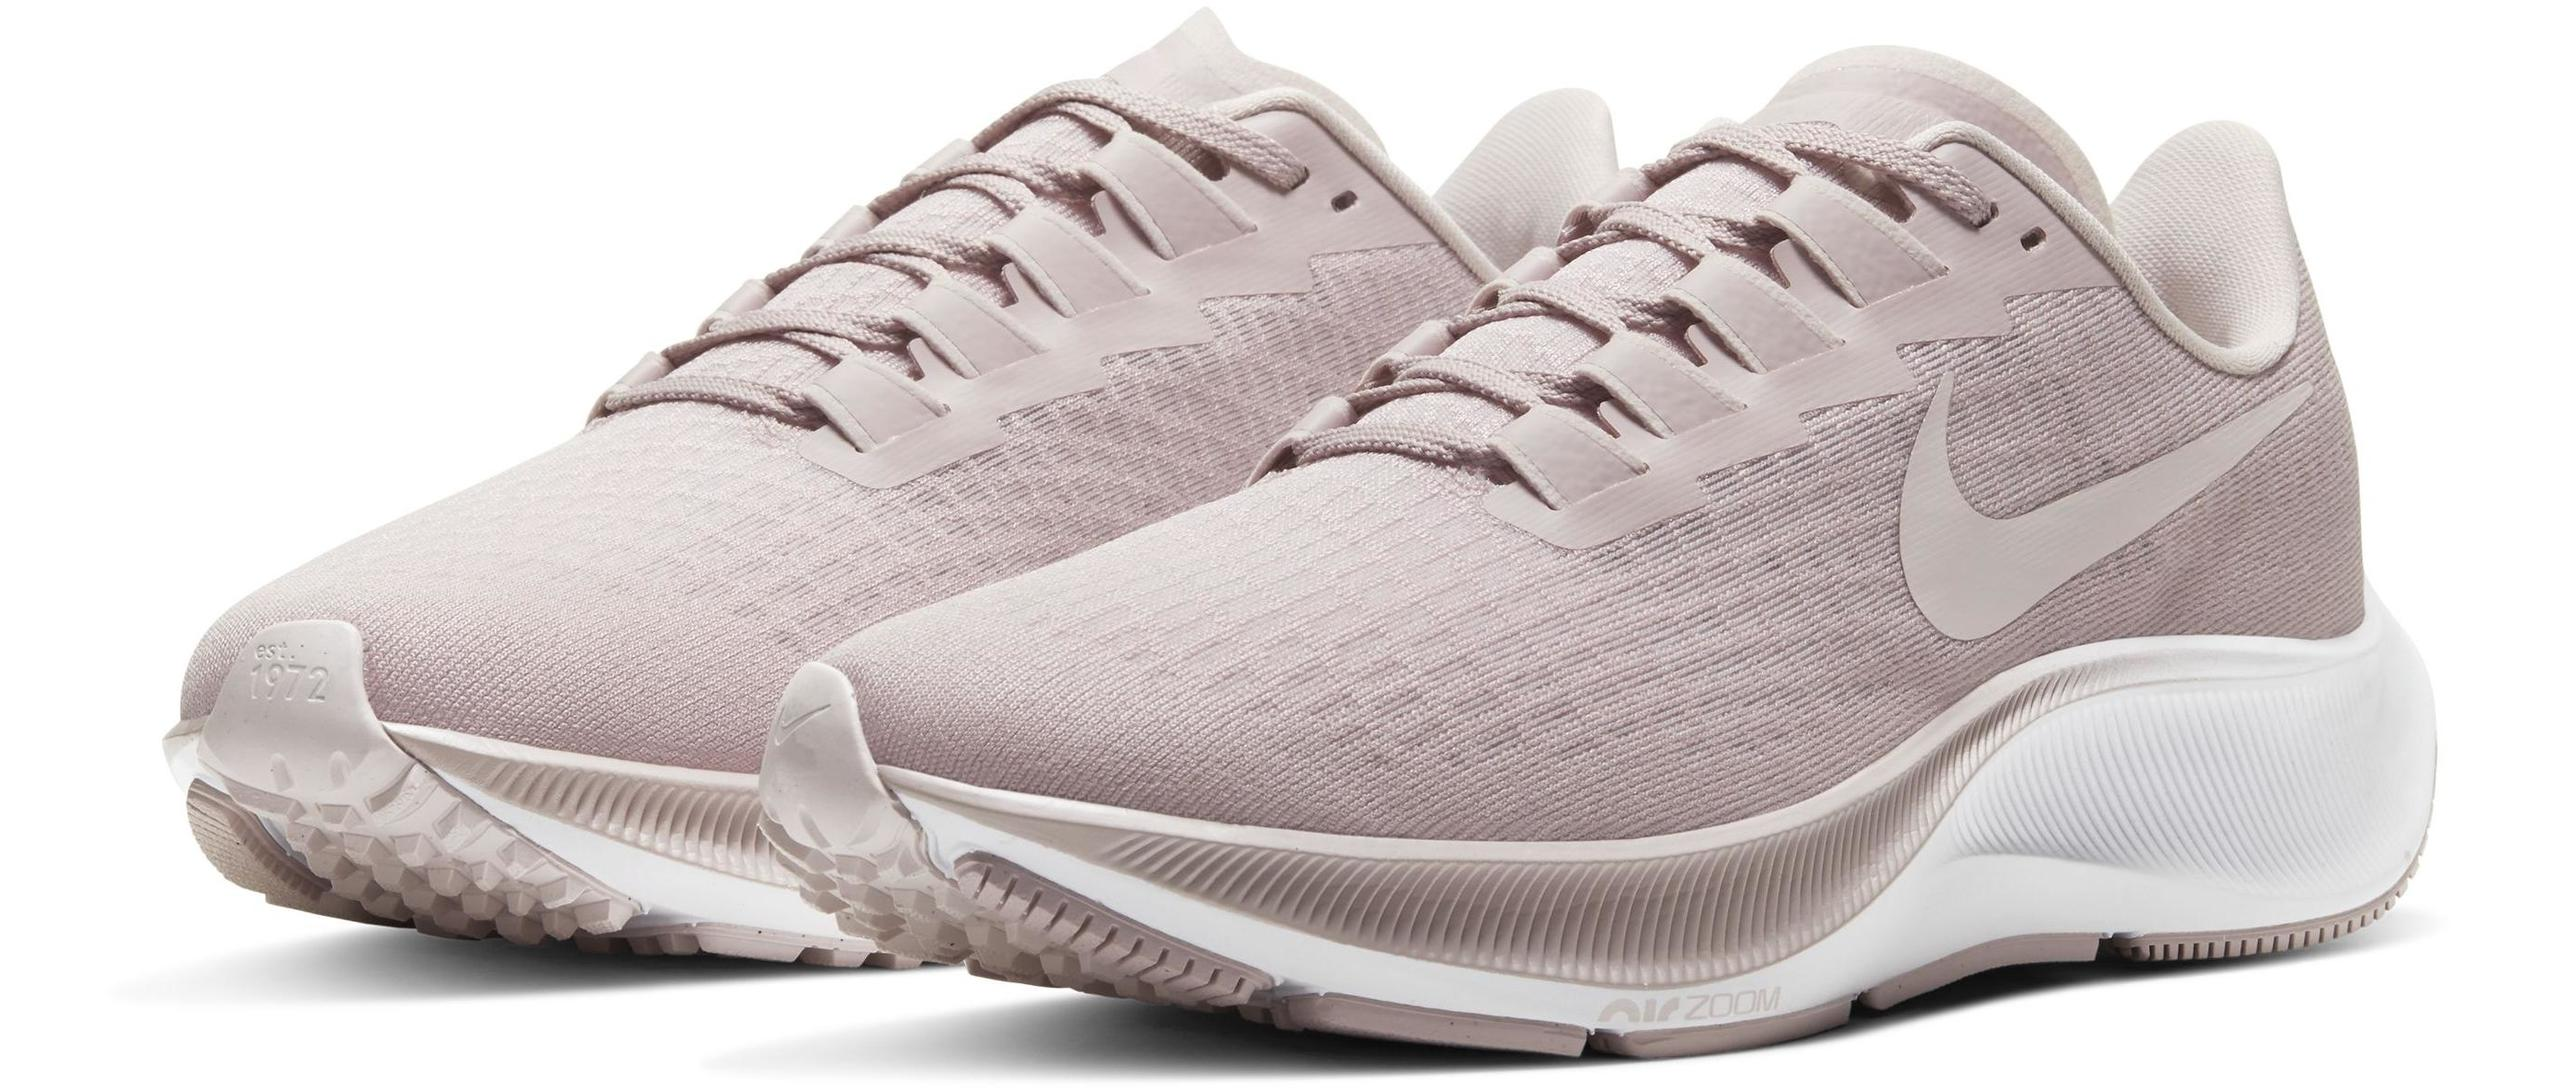 Nike Air Zoom Pegasus 37 Champagne/White/Barely Rose